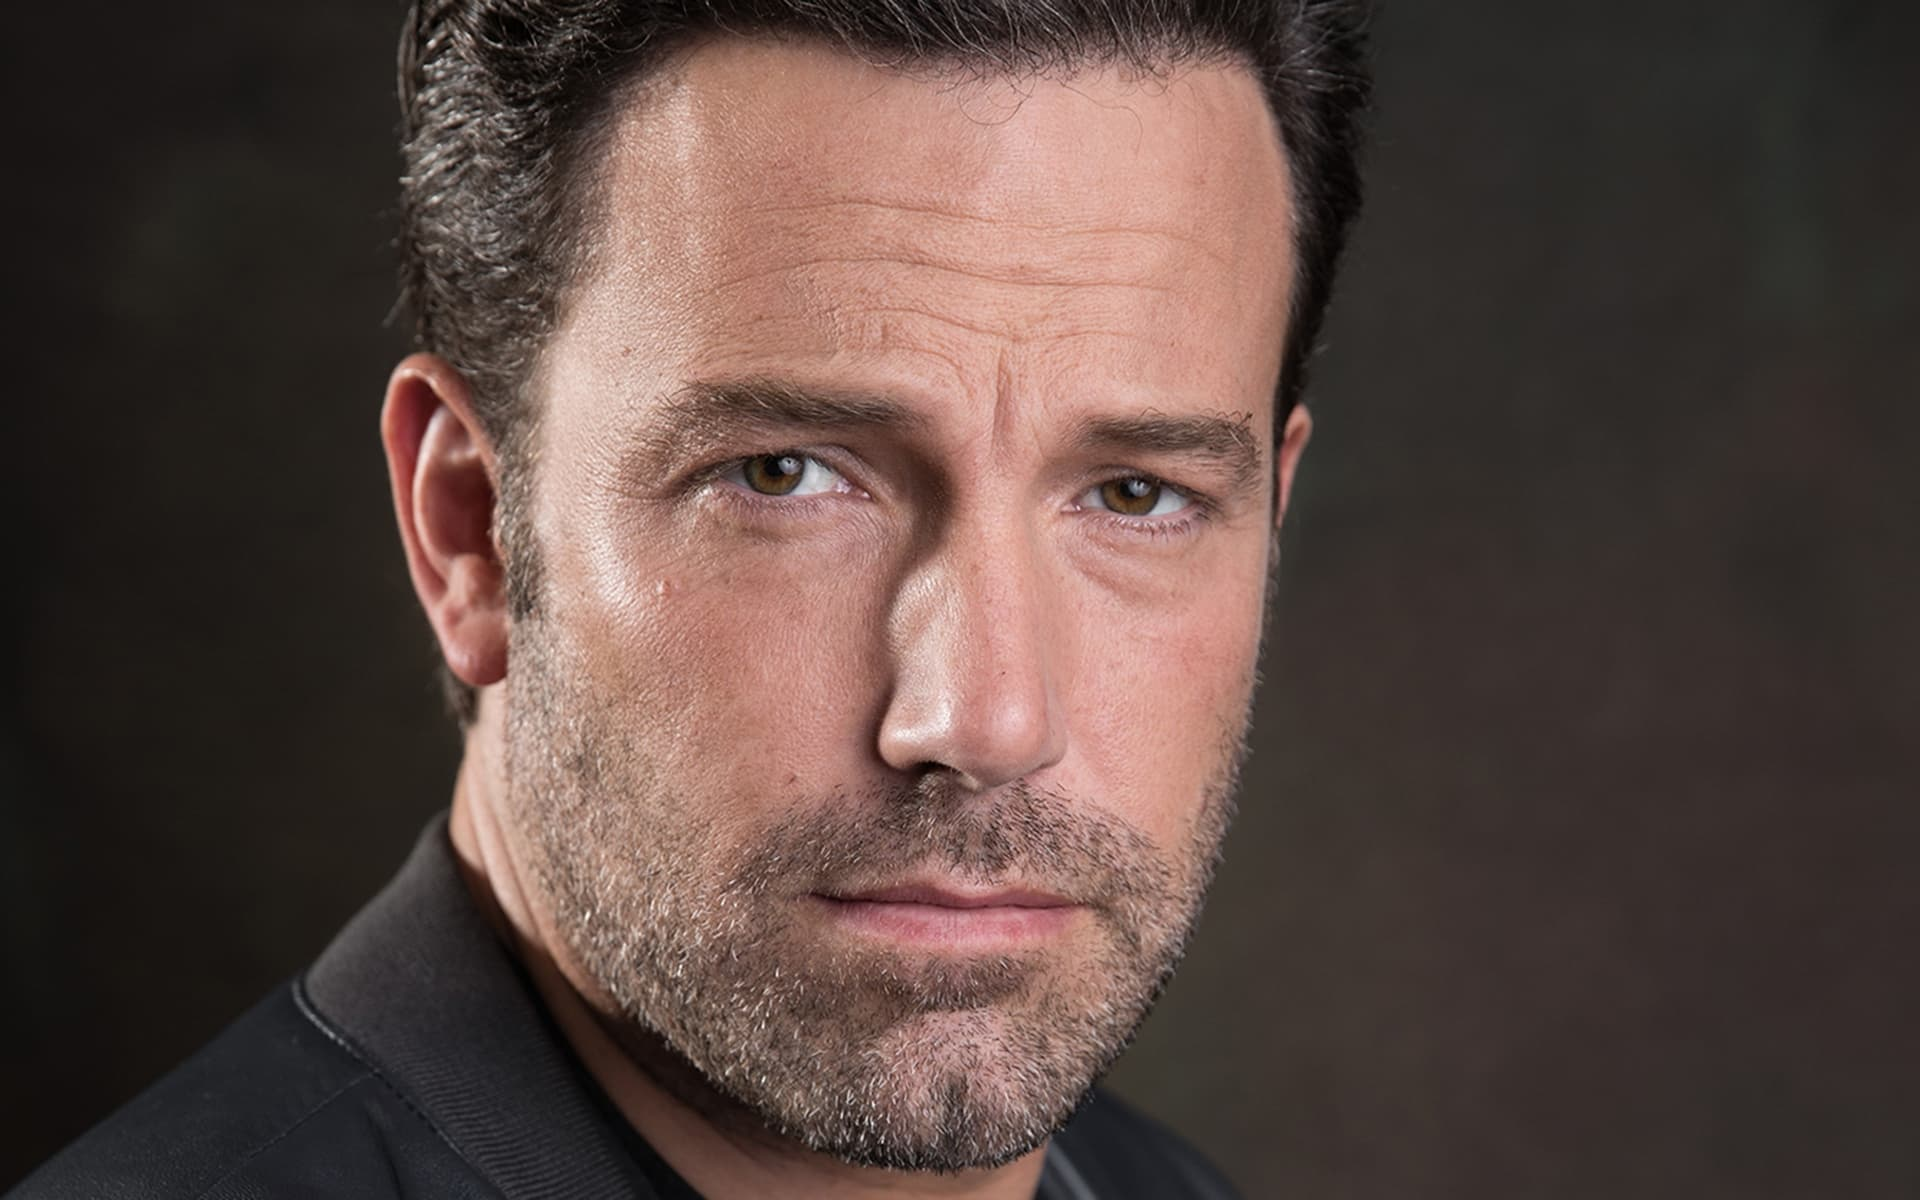 HD wallpaper Ben Affleck poker face image for Desktop